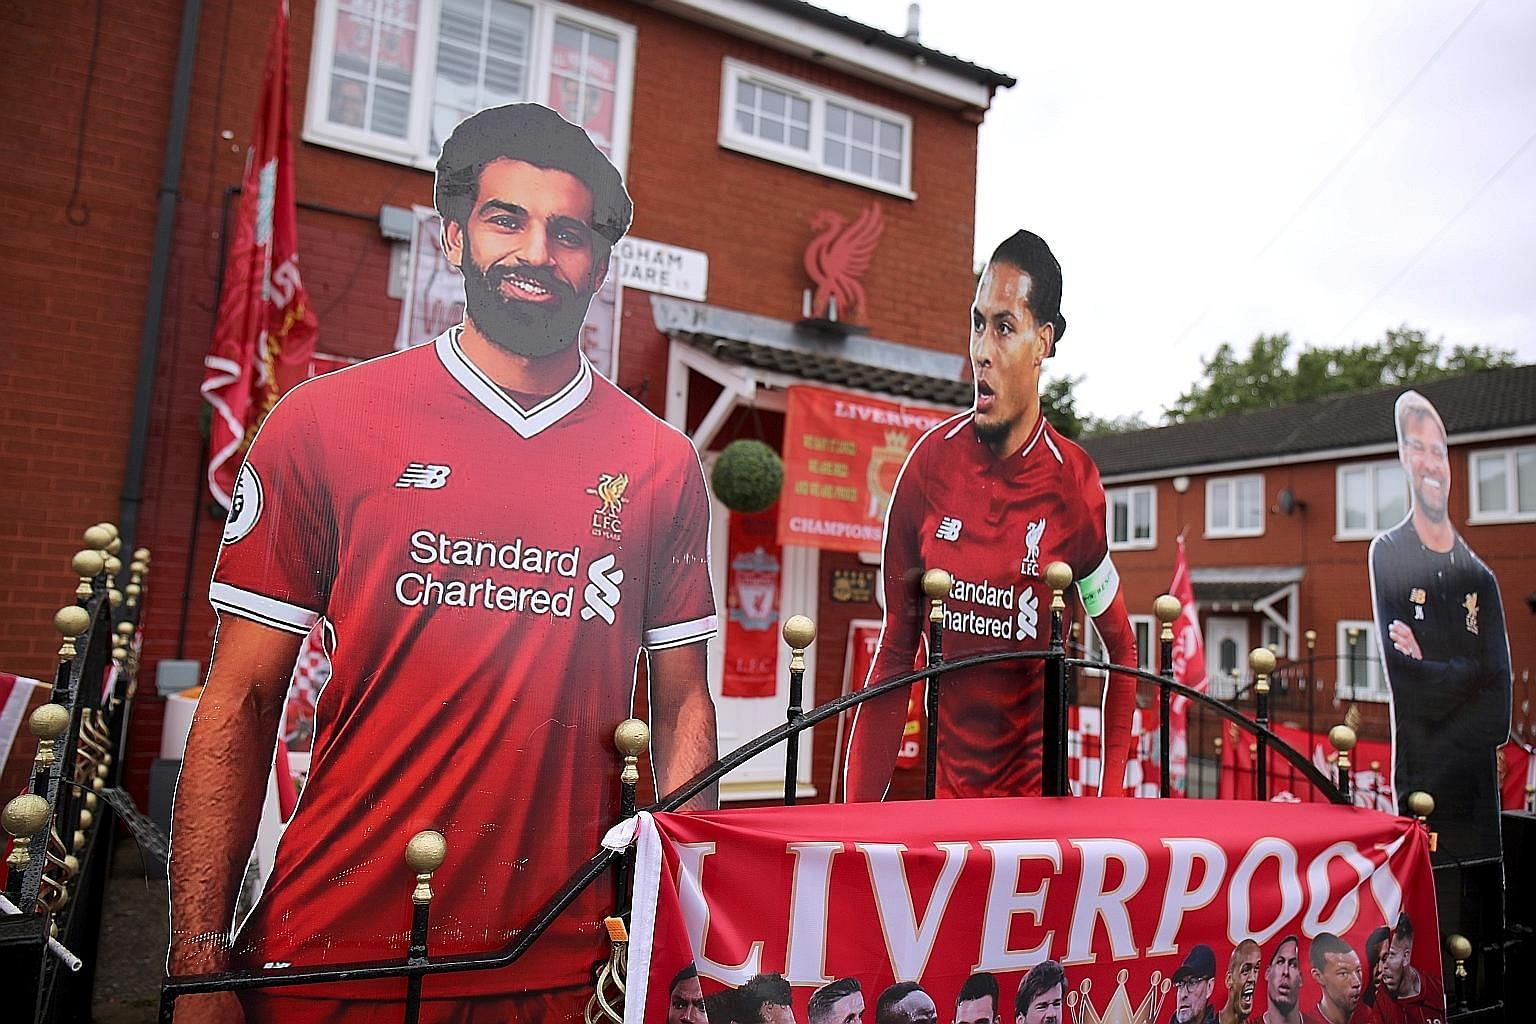 Cut-outs of (from left) Liverpool's Mohamed Salah, Virgil van Dijk and manager Jurgen Klopp are seen outside the house of a Reds fan. PHOTO: REUTERS